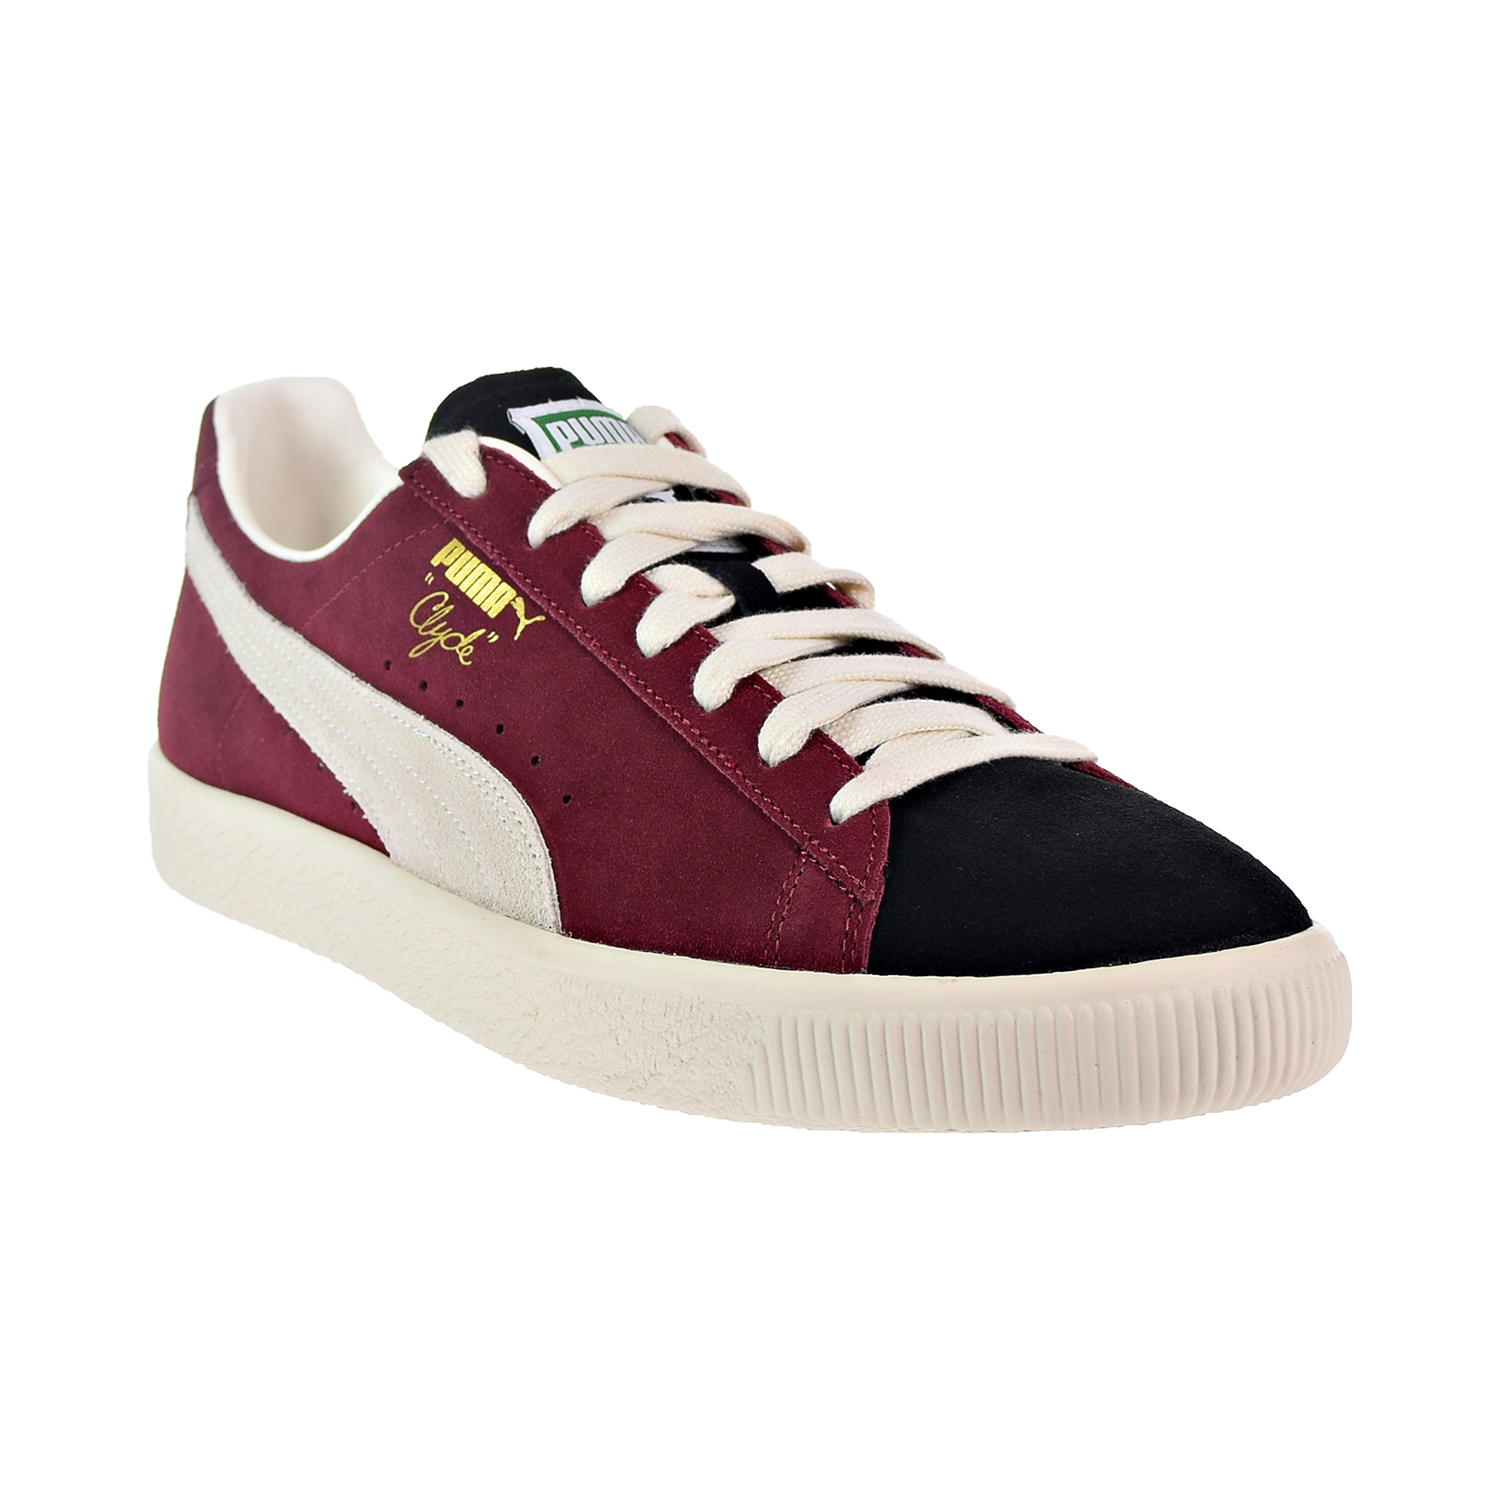 8f19ed643e8 Puma Clyde From The Archive Men s Shoes Black Cordovan Whisper White  365319-04